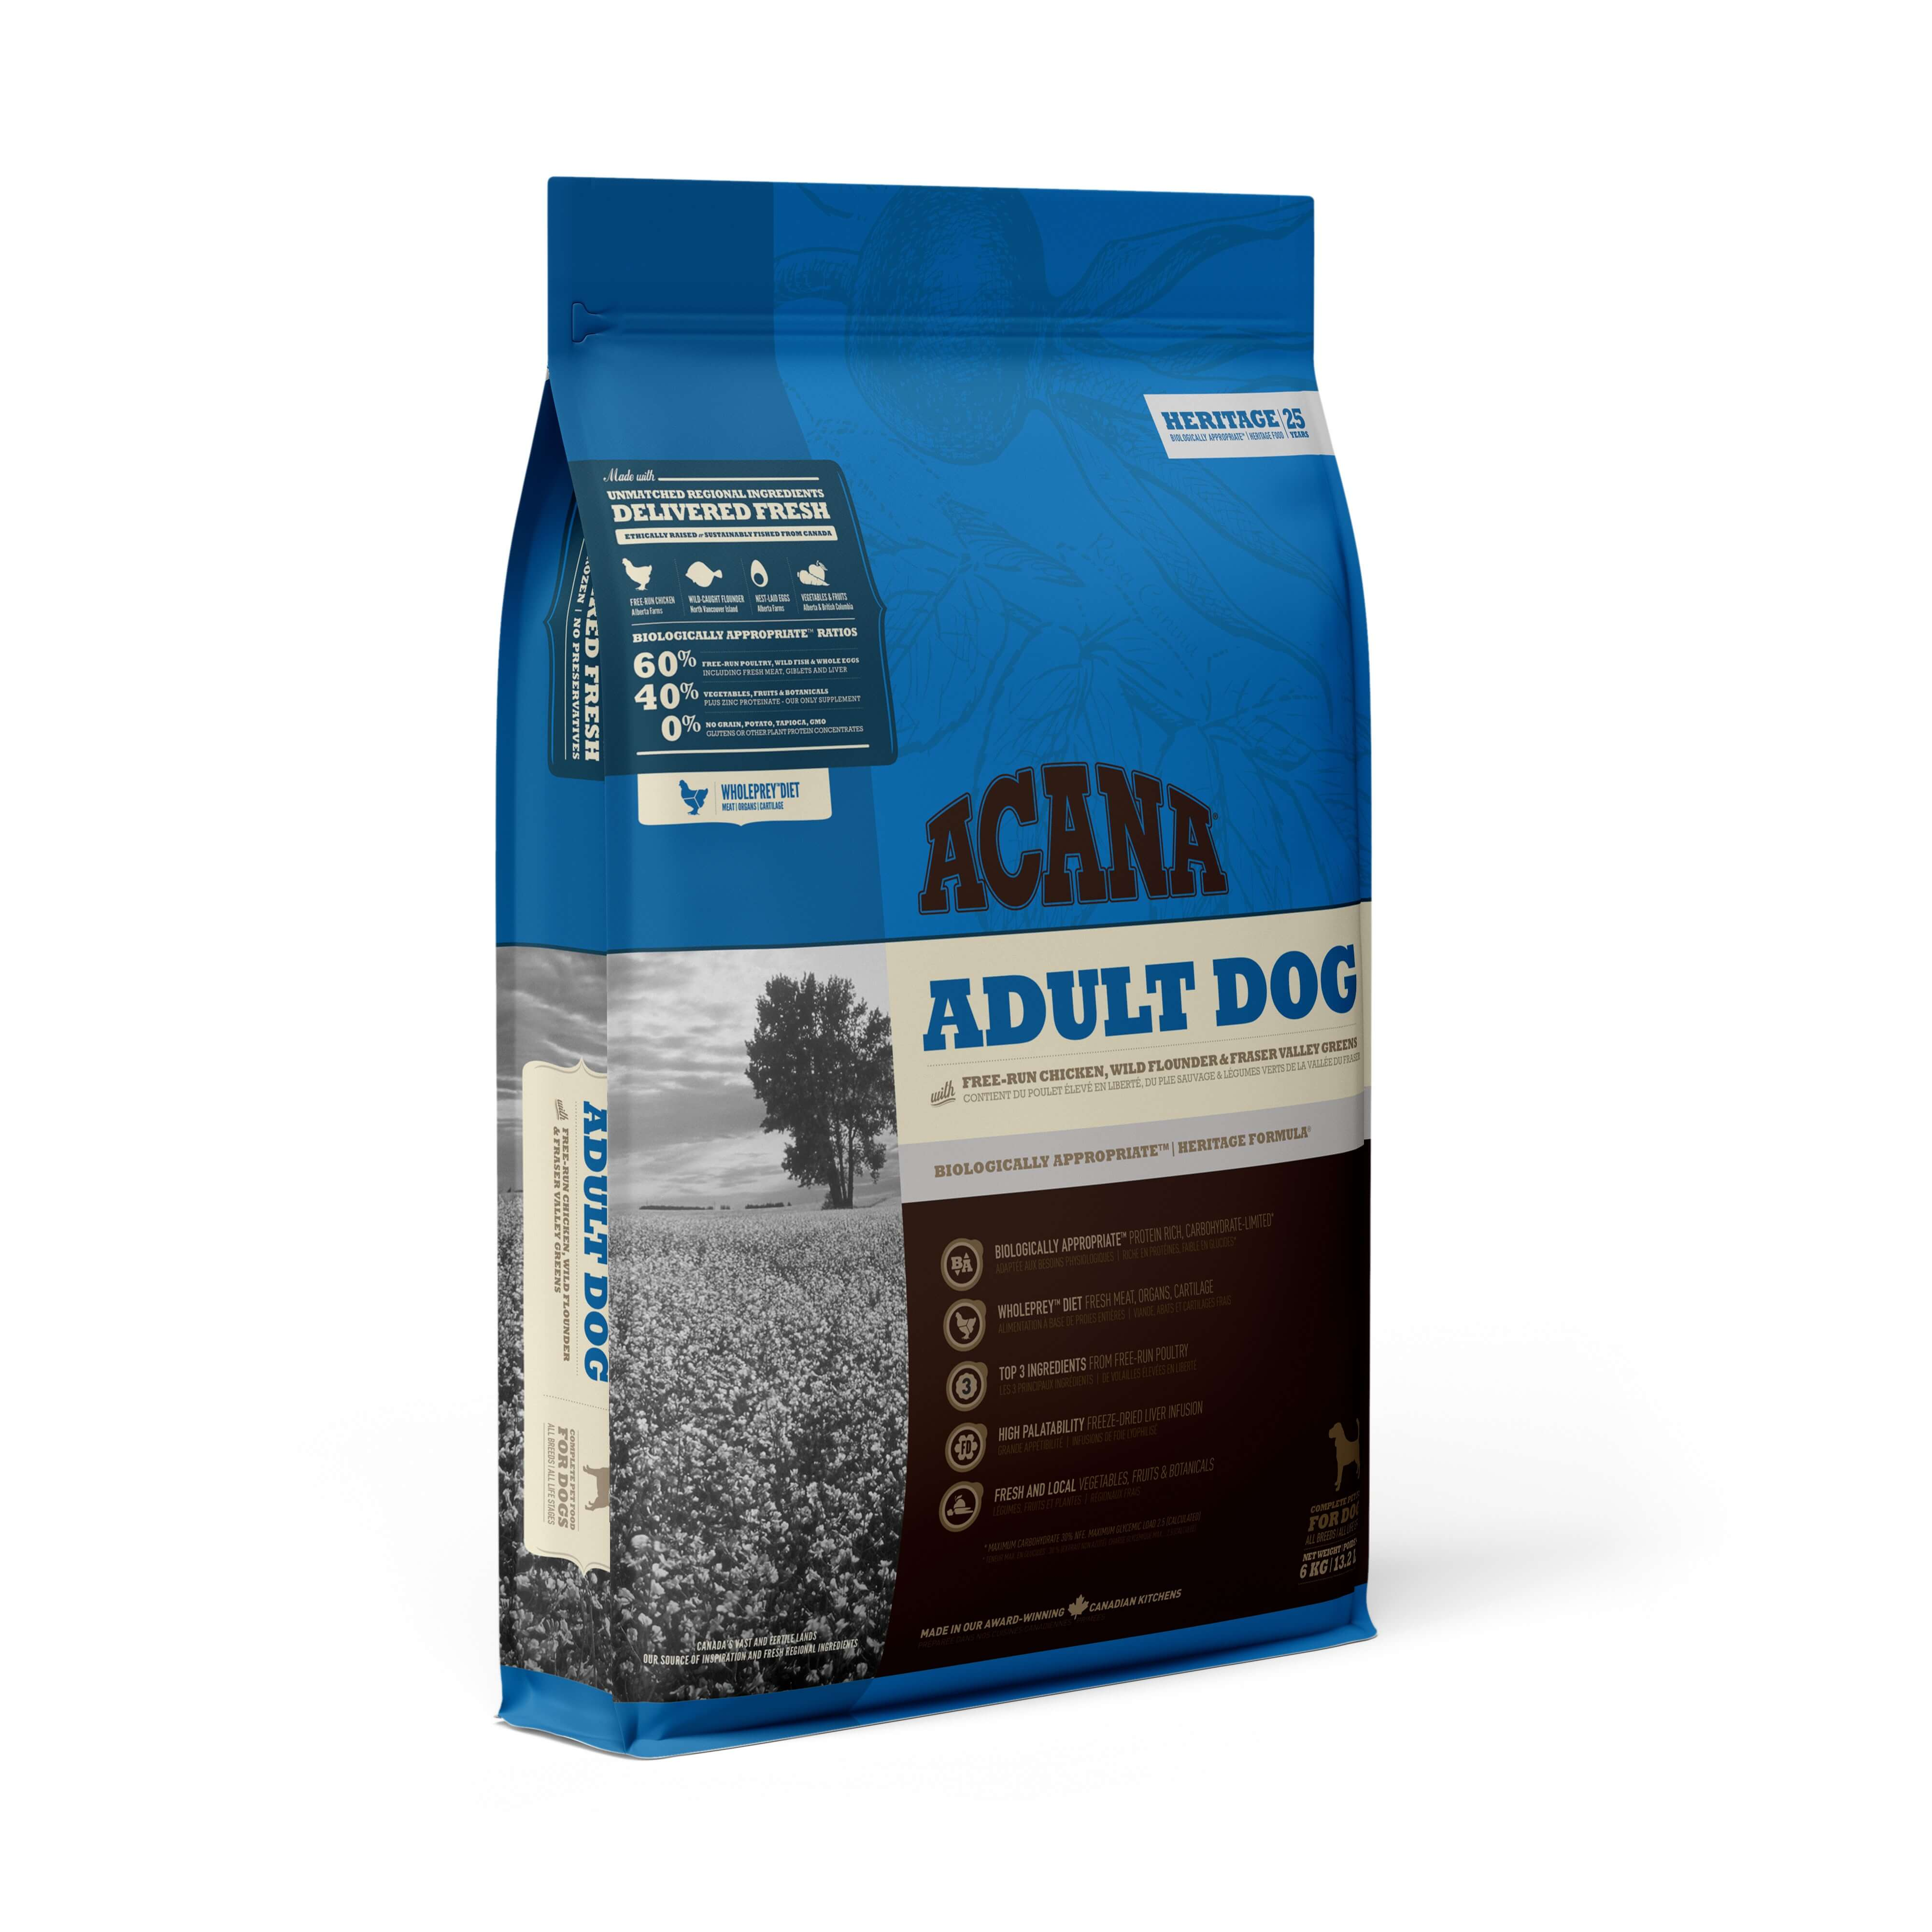 Acana Adult Dog | 17kg - Click to enlarge picture.